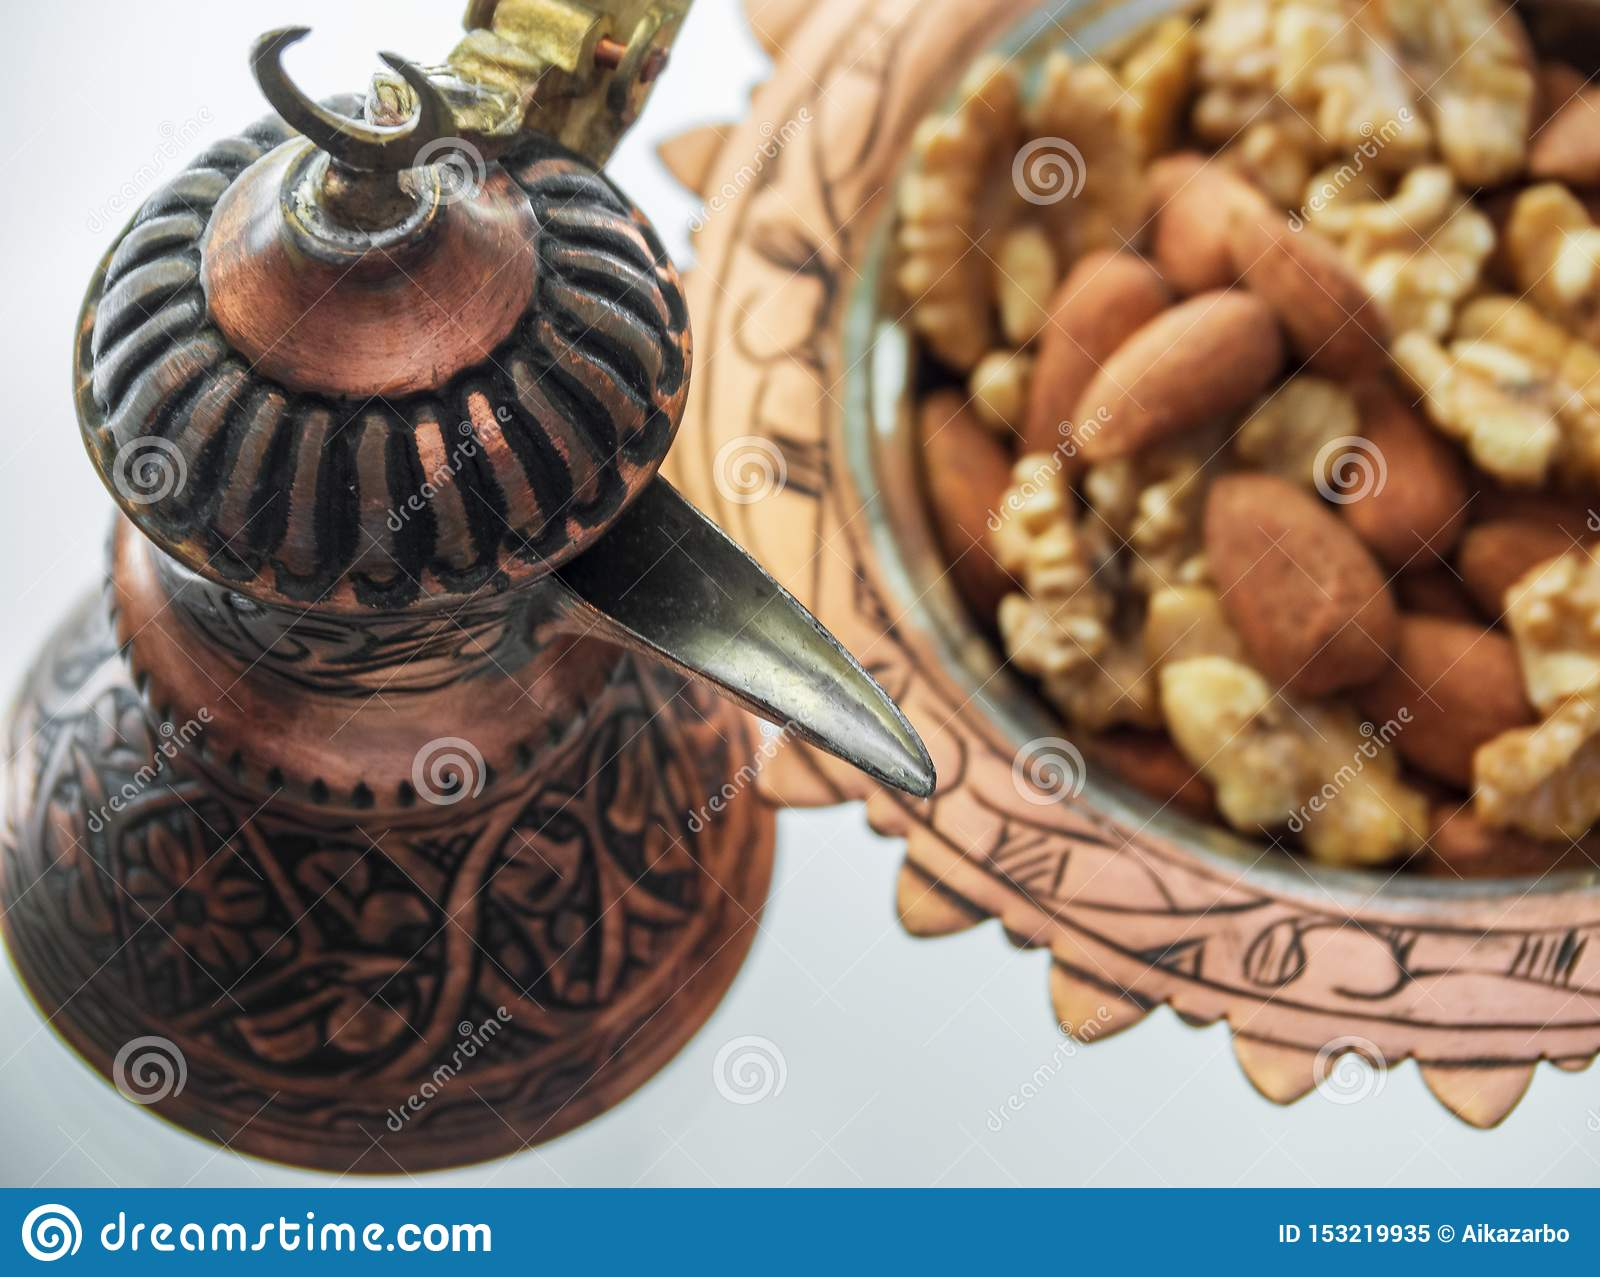 Turkish copper cookware handmade from Turks and candy dish with almonds and walnuts